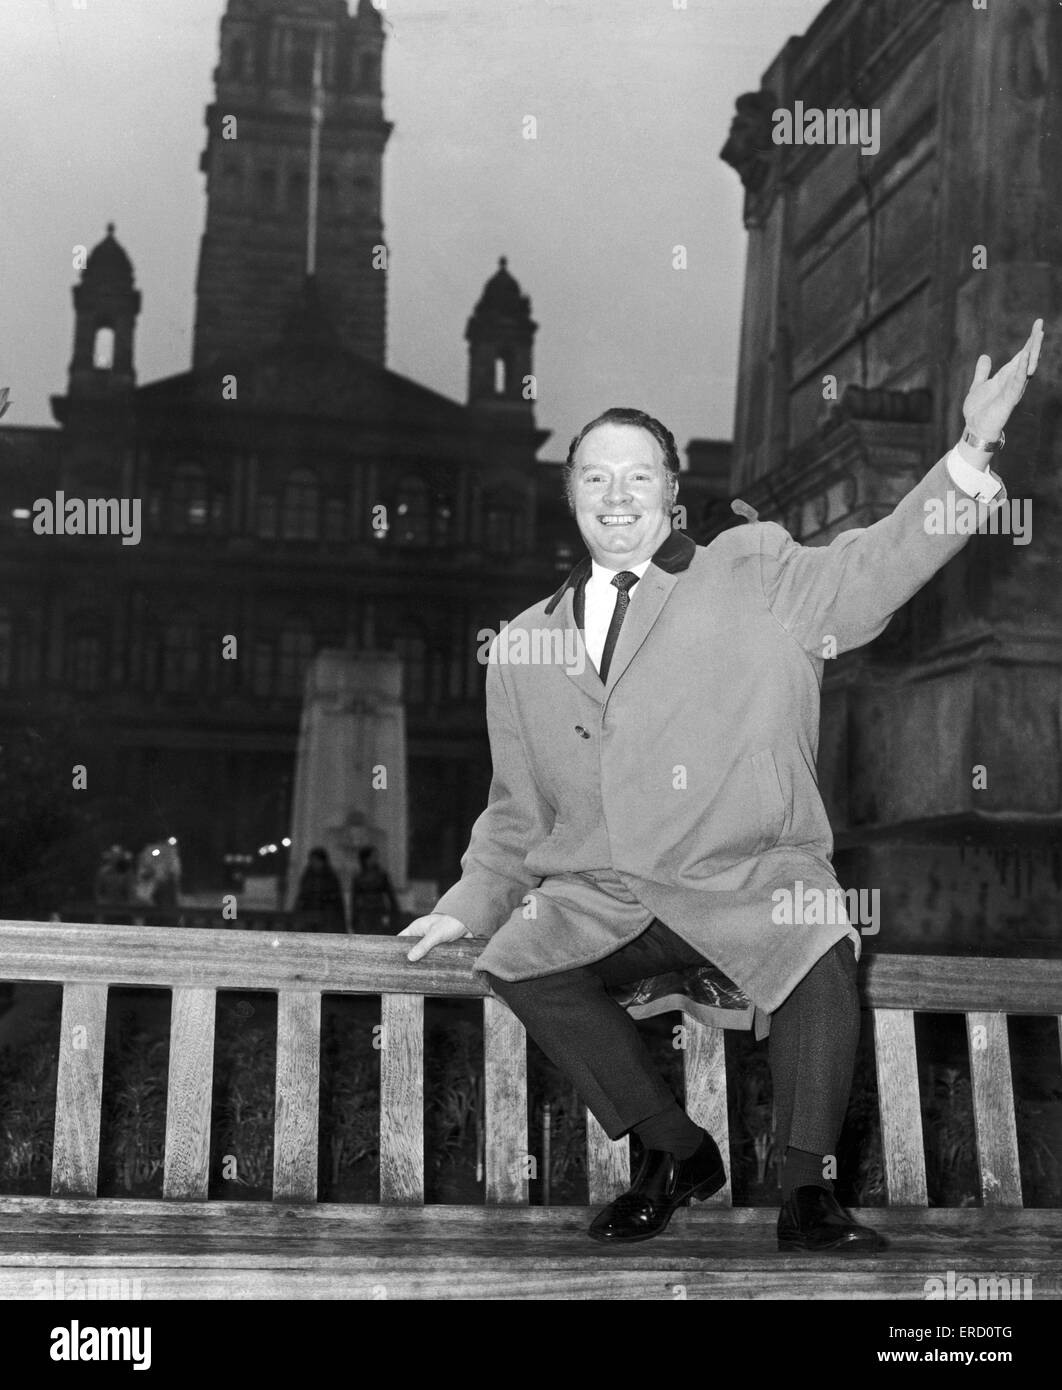 Glen Daly, Scotland's controversial comedian poses here on a bench in Glasgow. 7th October 1979. - Stock Image